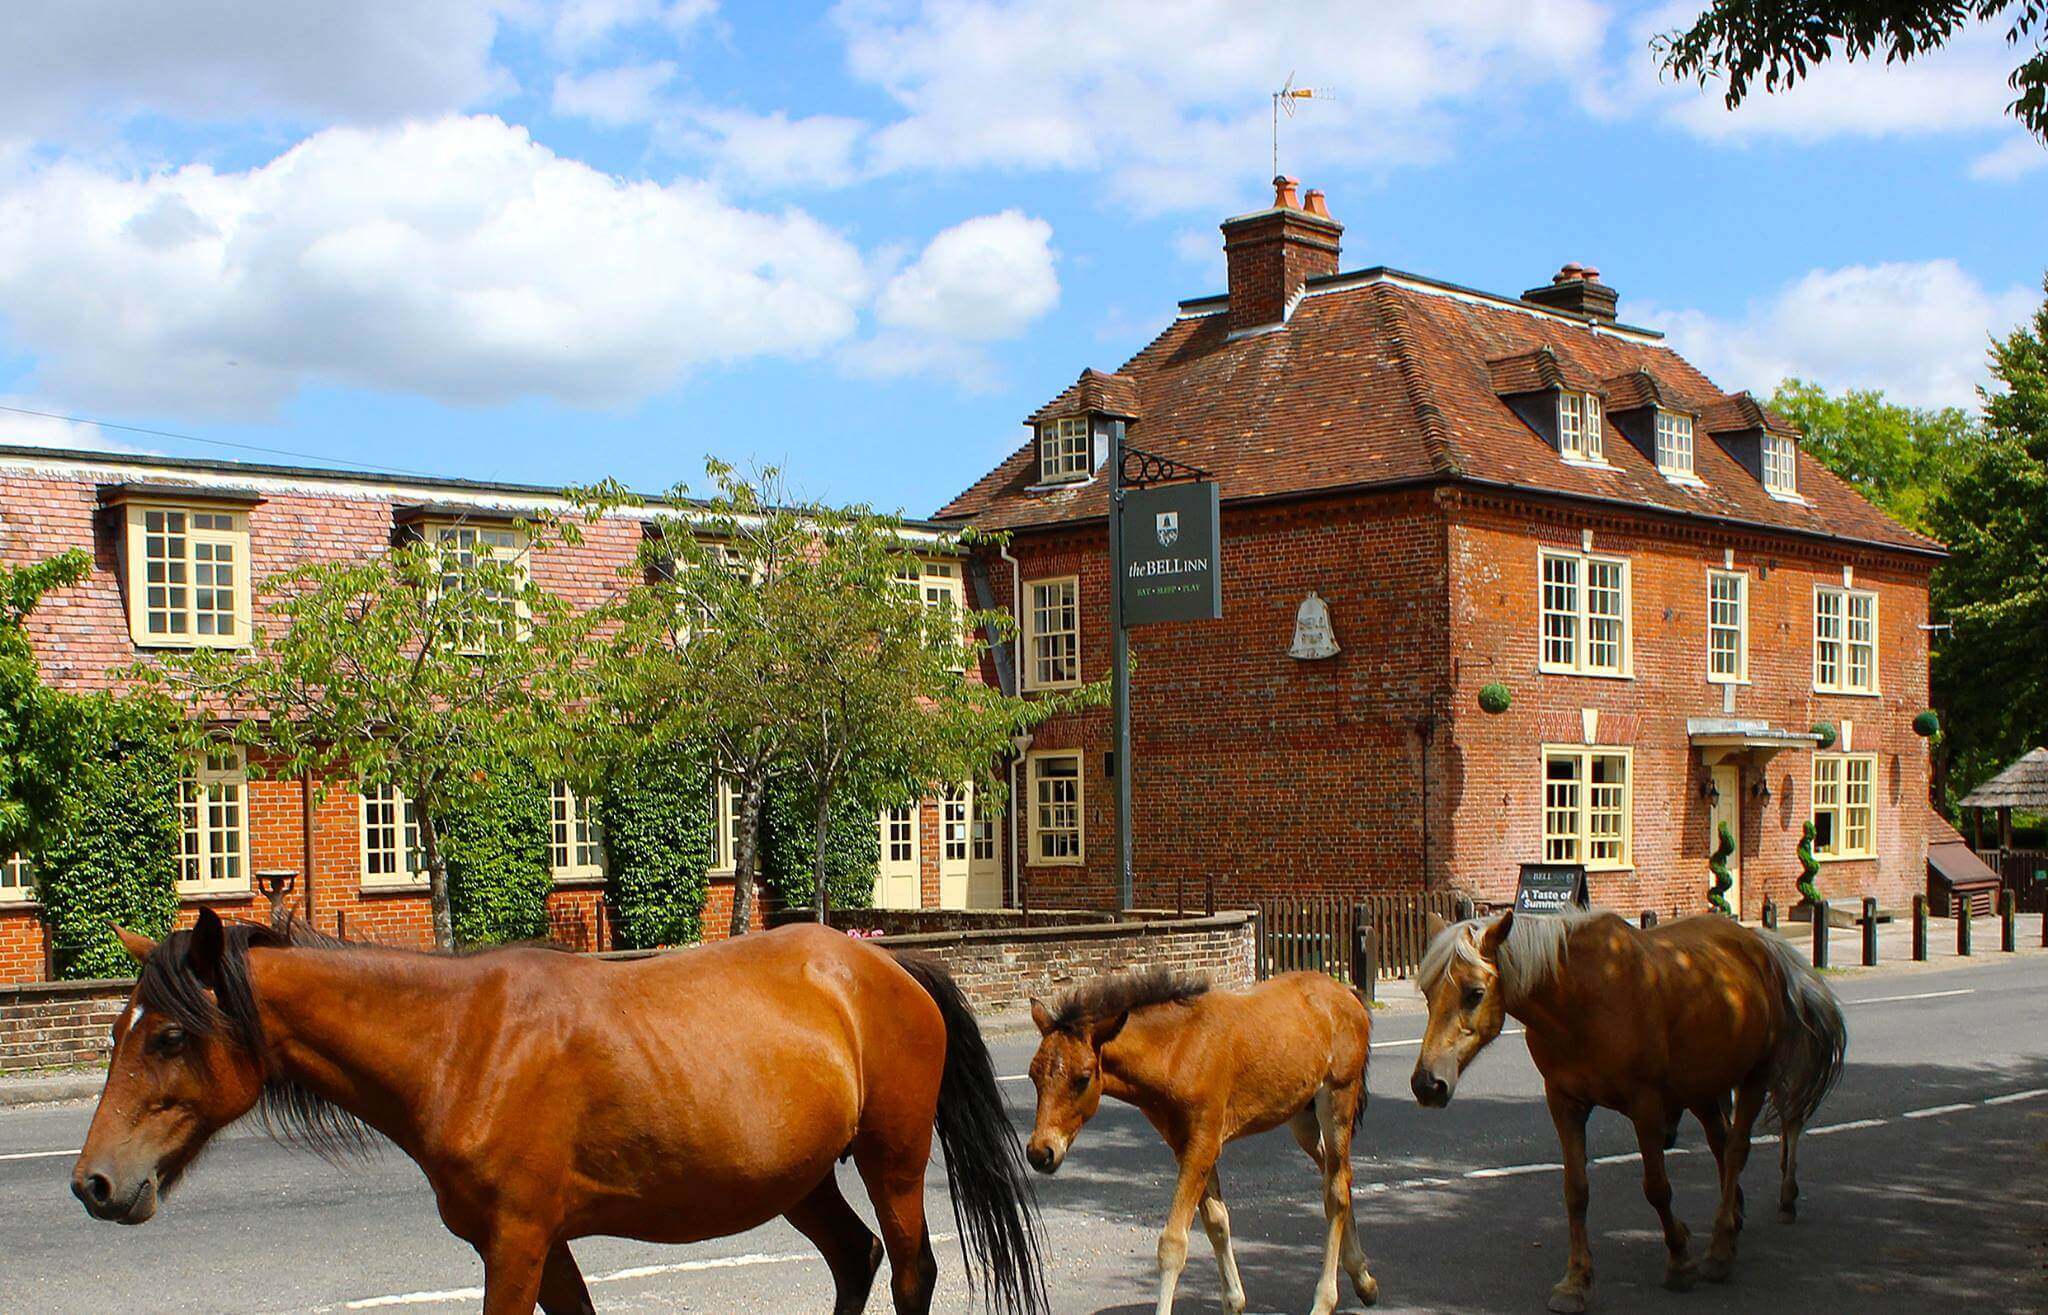 Perfect Weekend: 48-Hours in the New Forest with Mini, new forest travel guide, what to to do in new forest, where to stay in the new forest, new forest stay, where to stay in new forest, staying in the new forest, new forest where to stay, where to stay new forest,